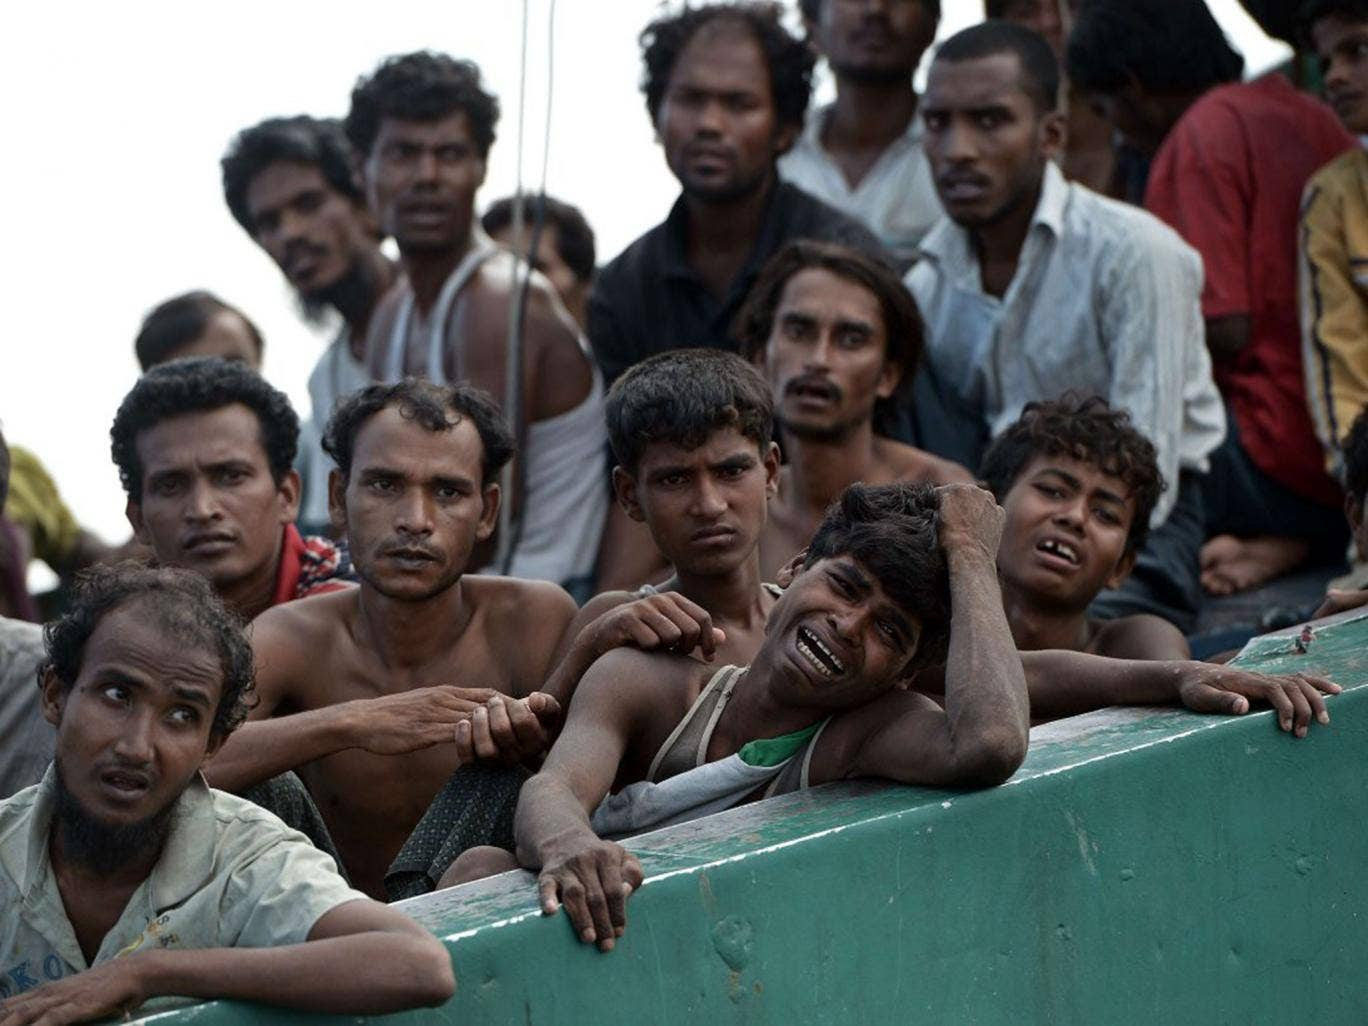 Rohingya migrants in a boat adrift in the Andaman Sea last week